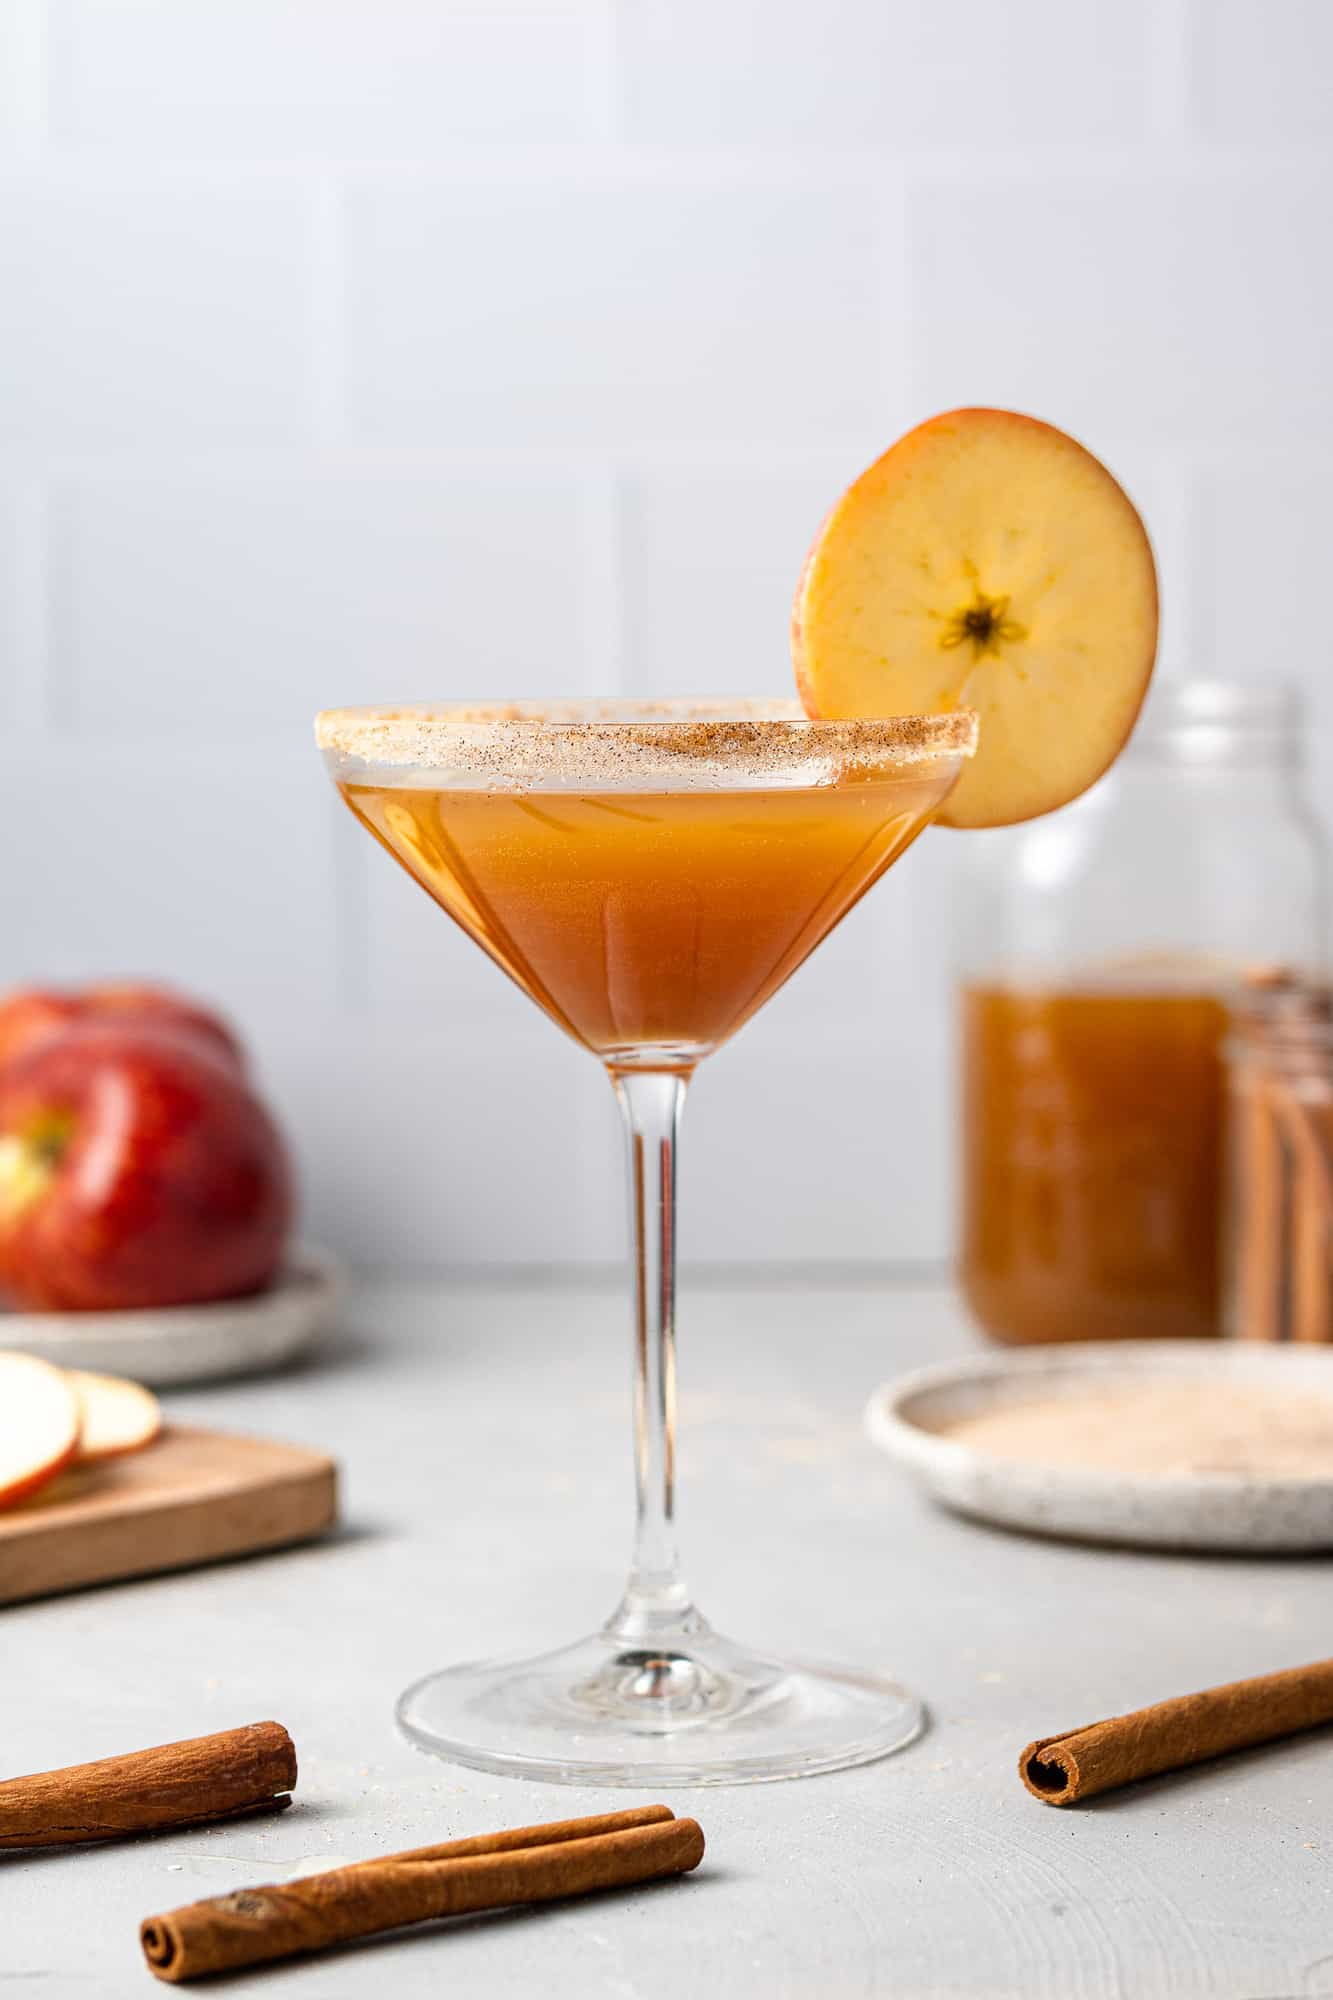 An apple cider based cocktail in a martini glass against a white background.